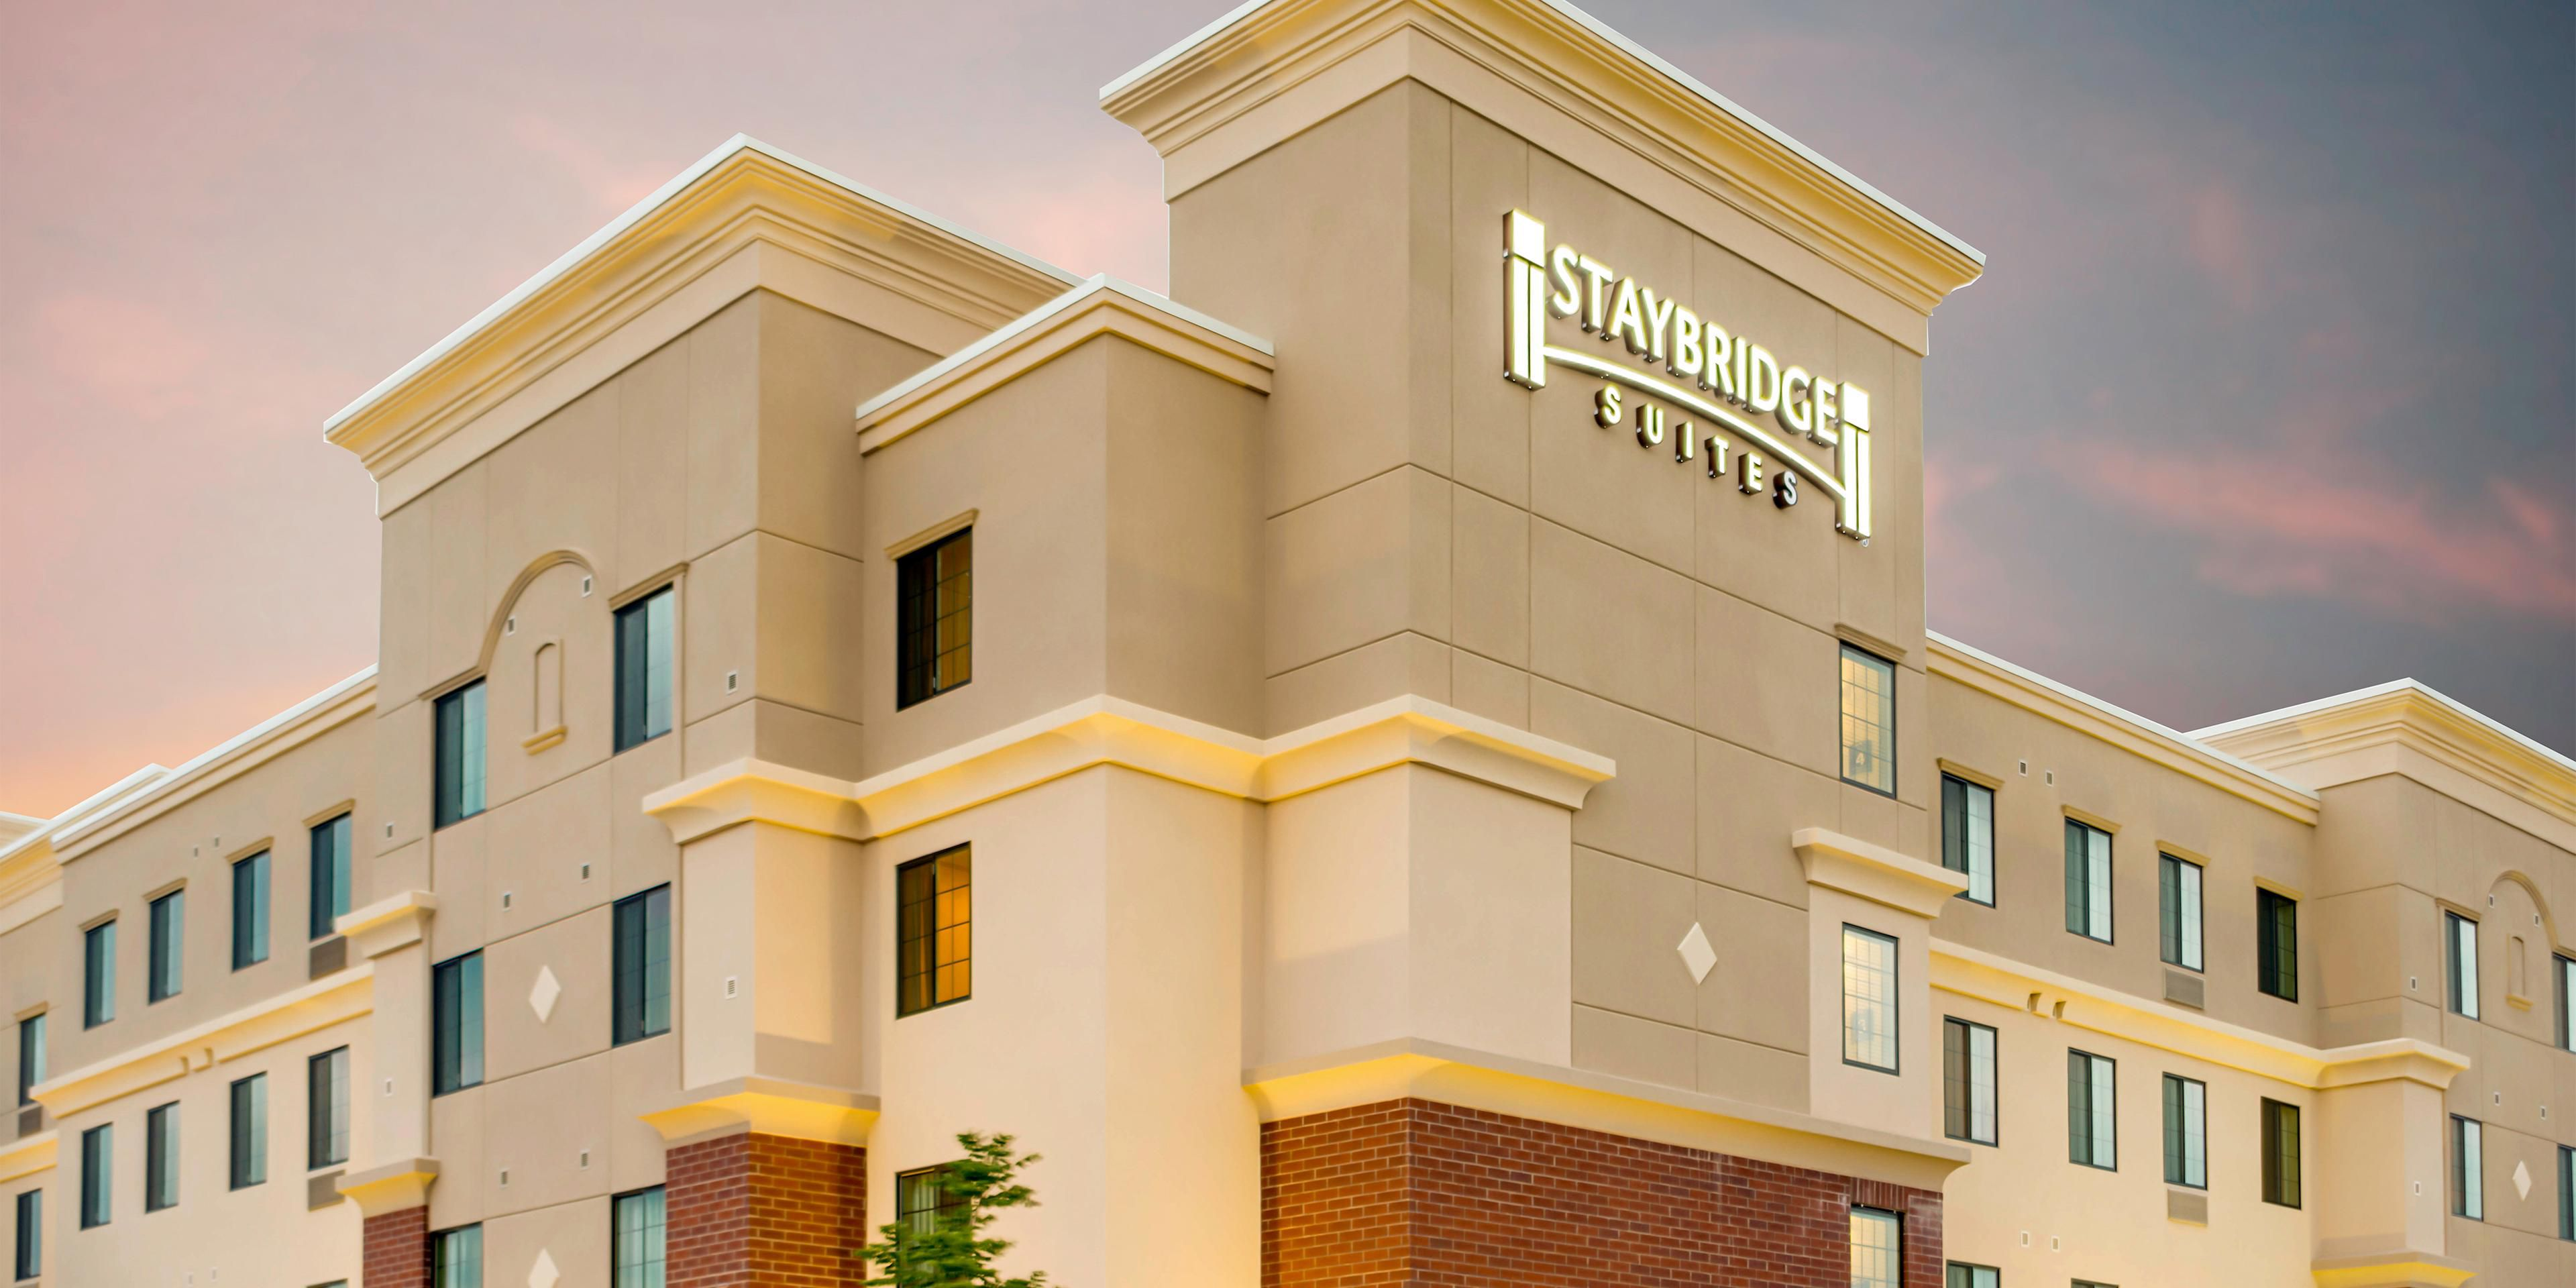 Staybridge Suites Denver Stapleton At 8101 Northfield Blvd